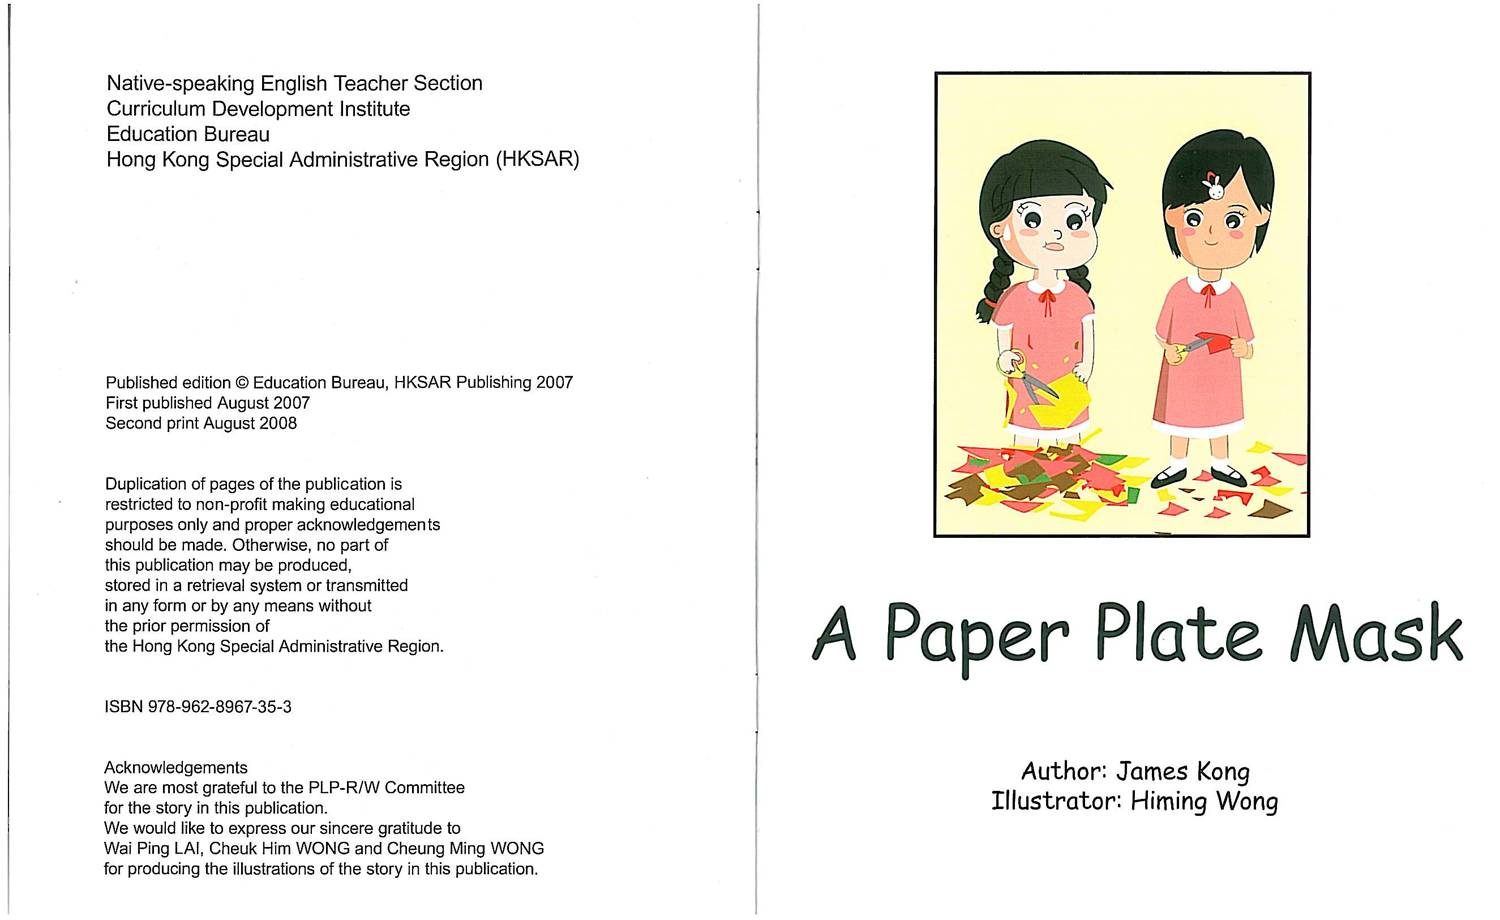 Thesis of a paper